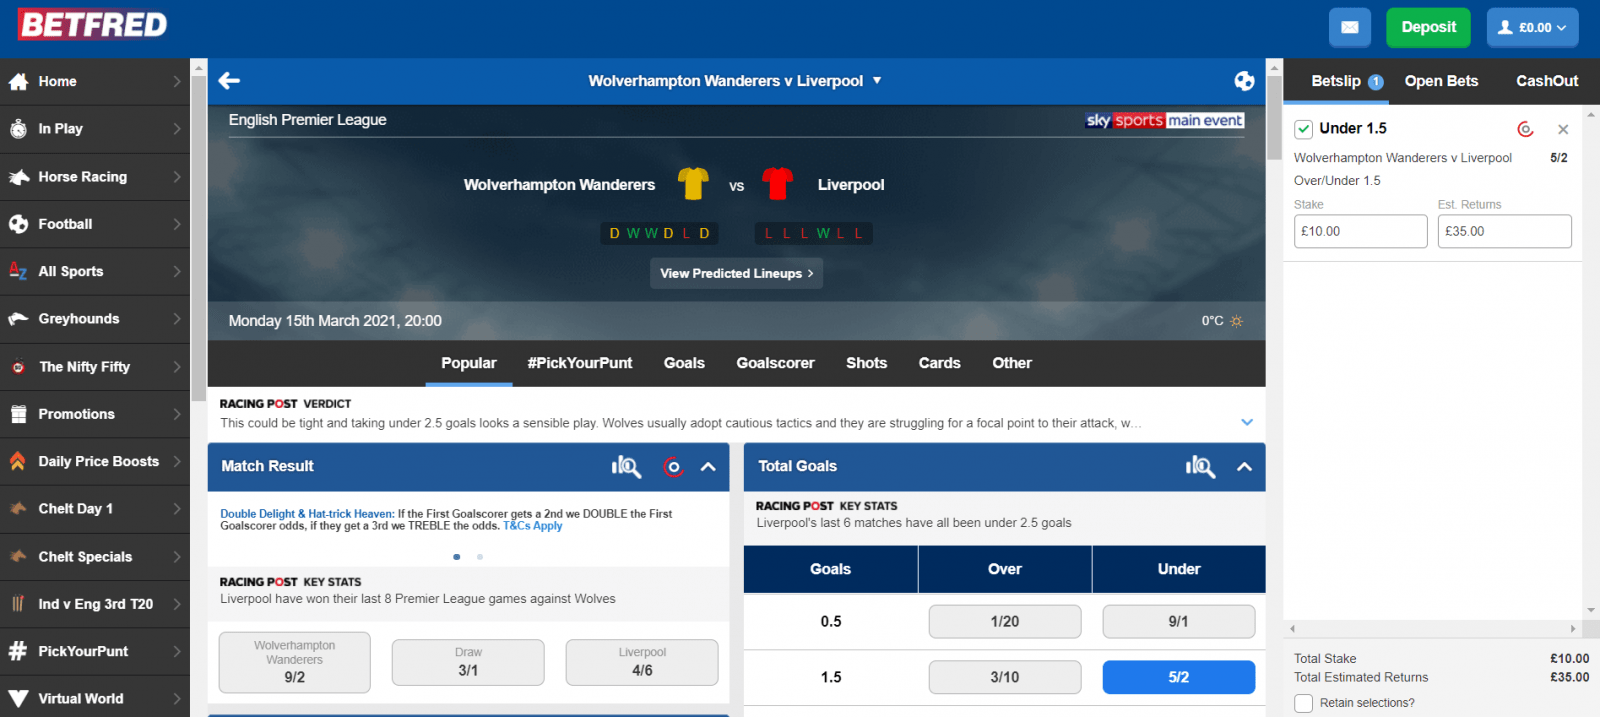 Betfred free bet offer - qualifying wager